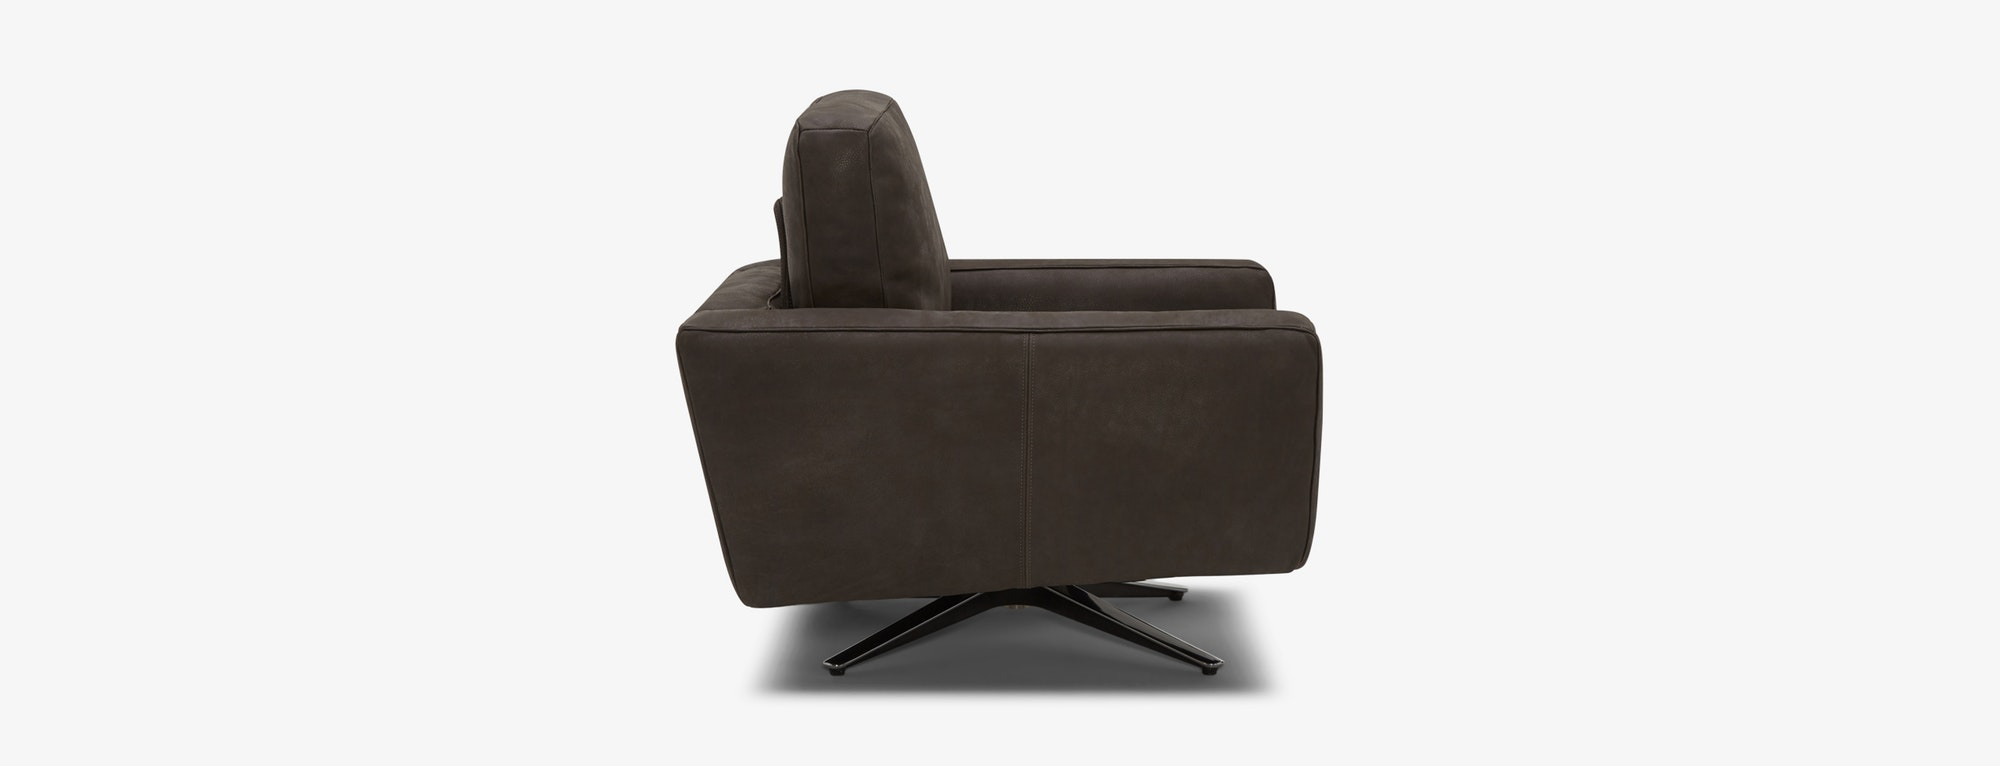 Nova-Leather-Swivel-Chair-Toledo-Graphite-T1-453